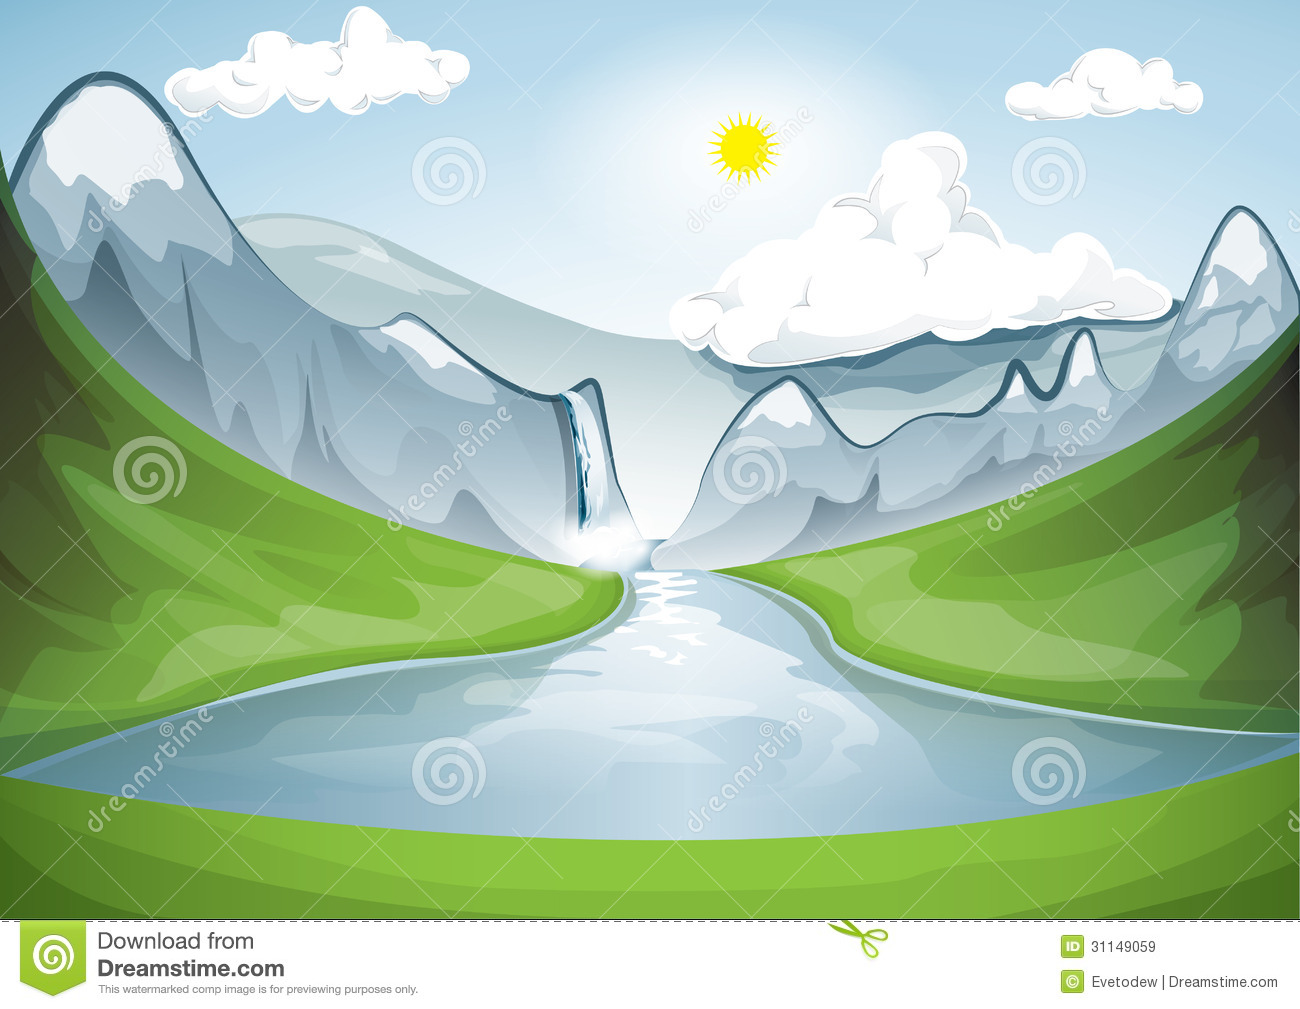 Lake Clipart Green Nature - Illustration - Png Download (#3817959) -  PinClipart